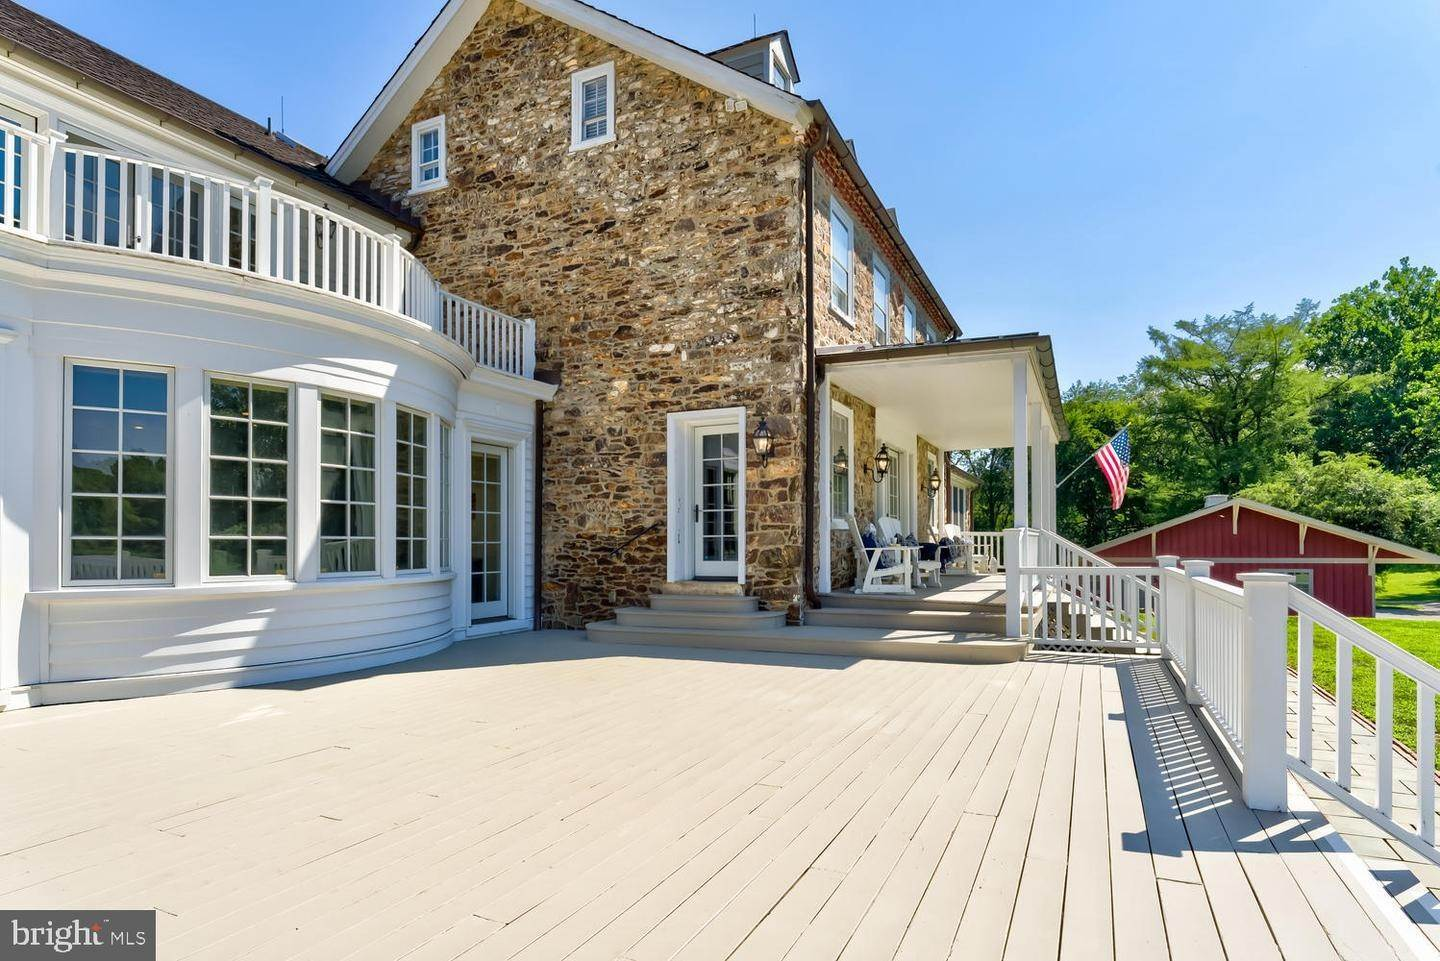 13. Detached House for Sale at 80 HEYBURN Road Chadds Ford, Pennsylvania 19317 United States